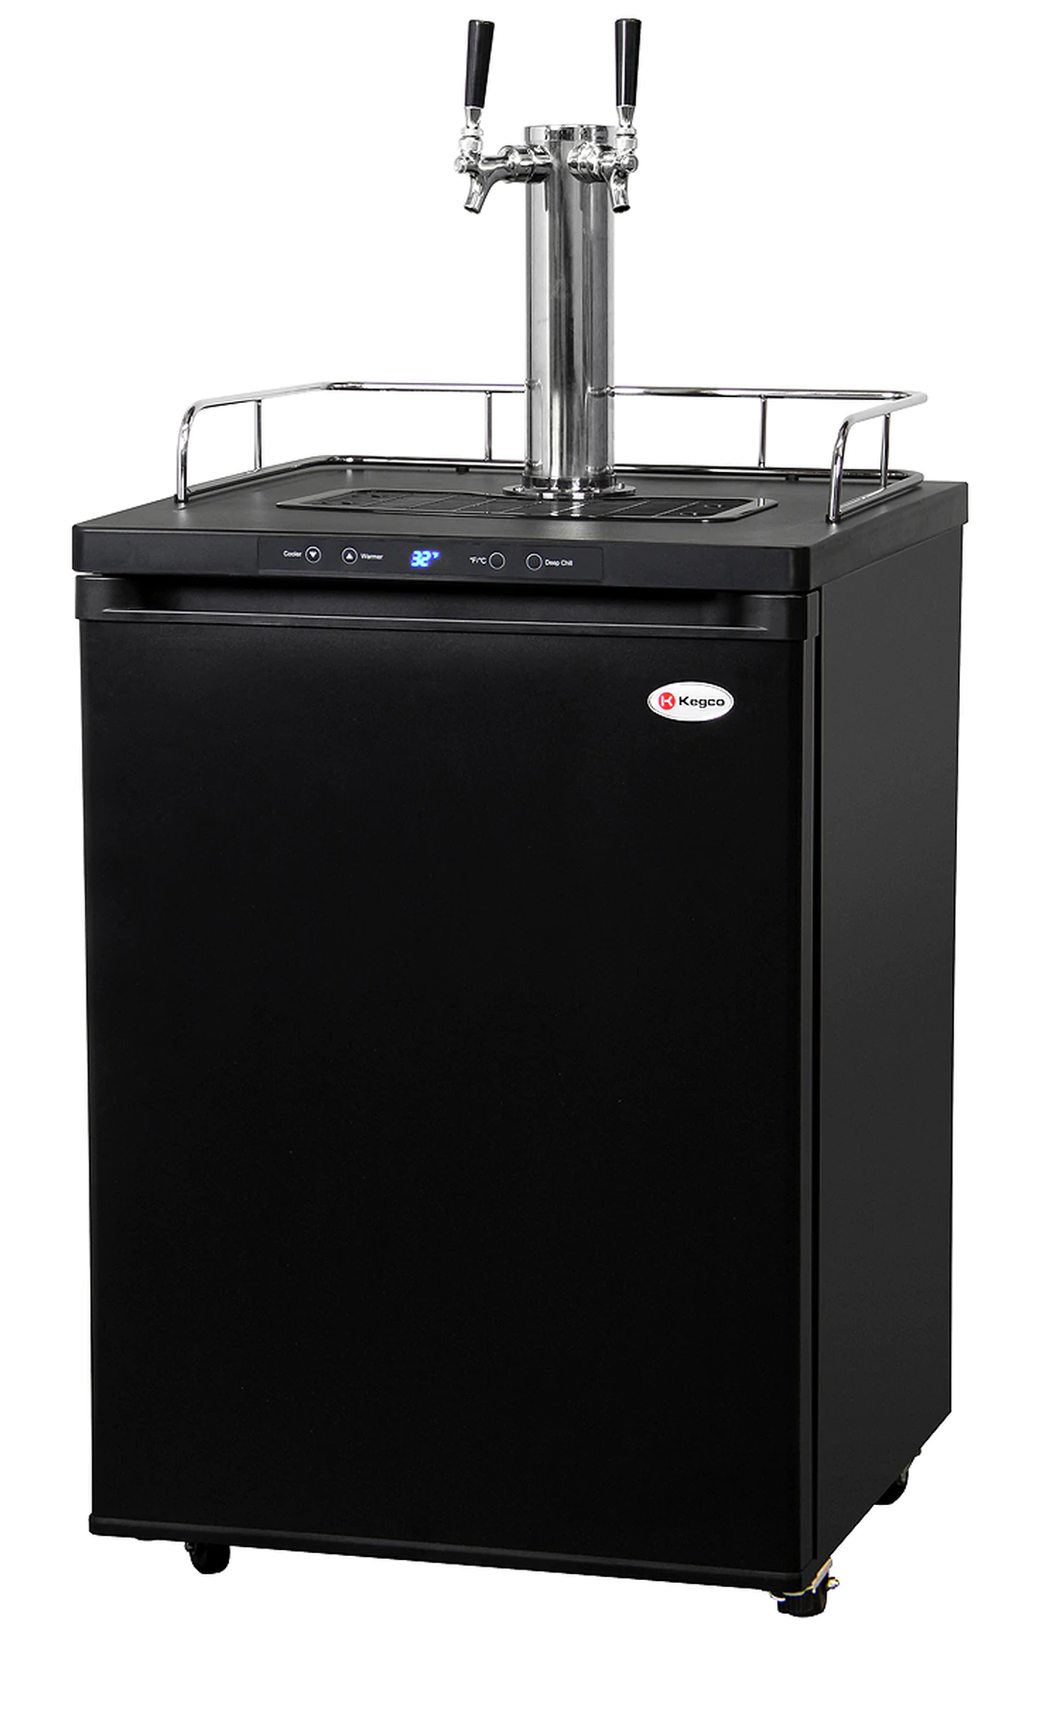 HBK309B-2 TWO-FAUCET HOME-BREW KEGERATOR - MATTE BLACK CABINET AND DOOR